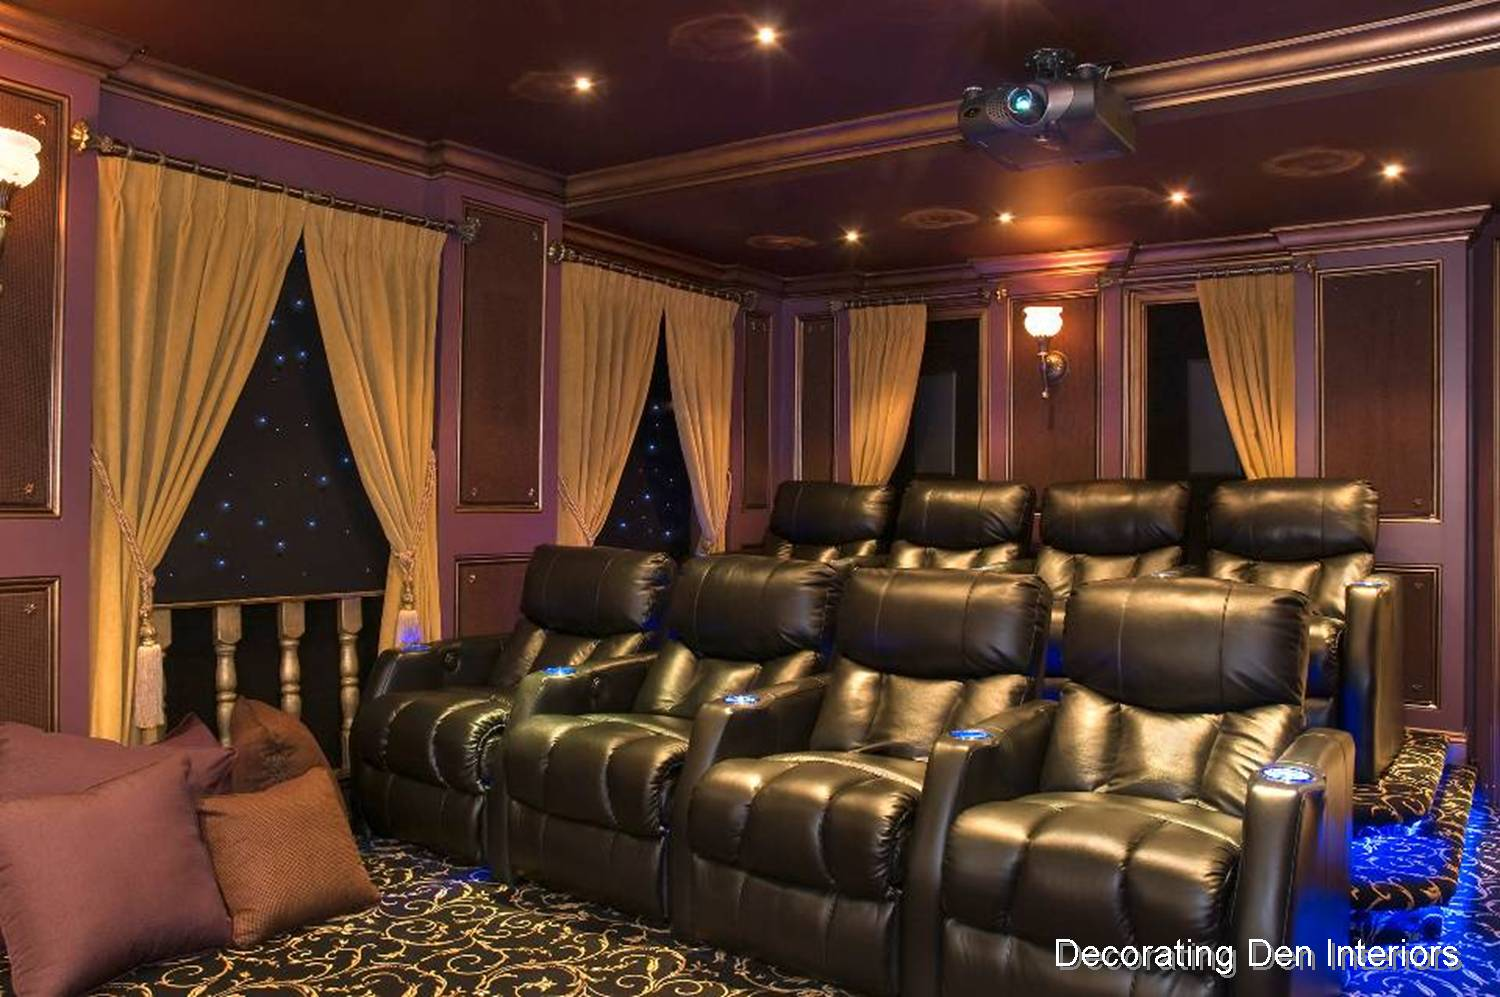 Small Media Room Ideas - interior decorating accessories